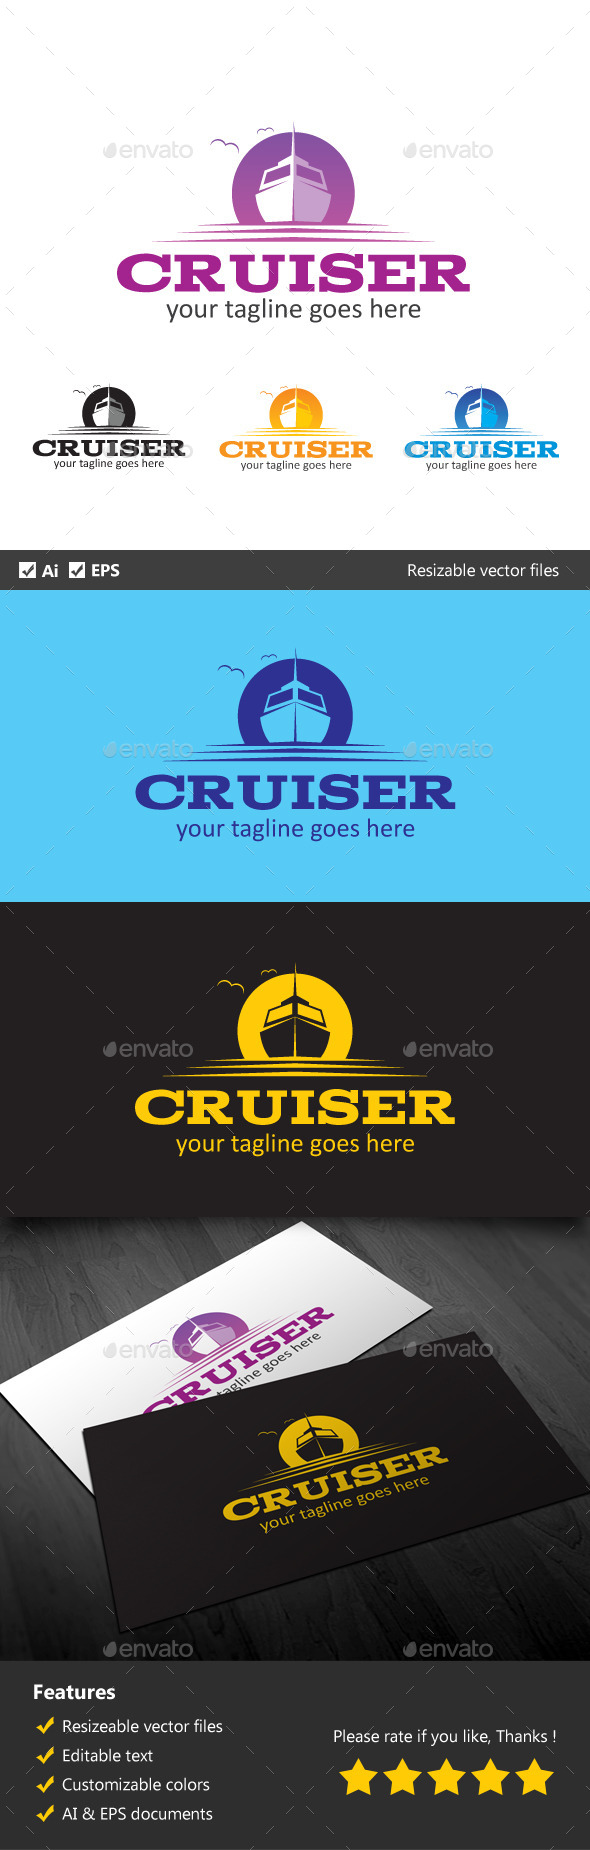 GraphicRiver Cruiser 10040510